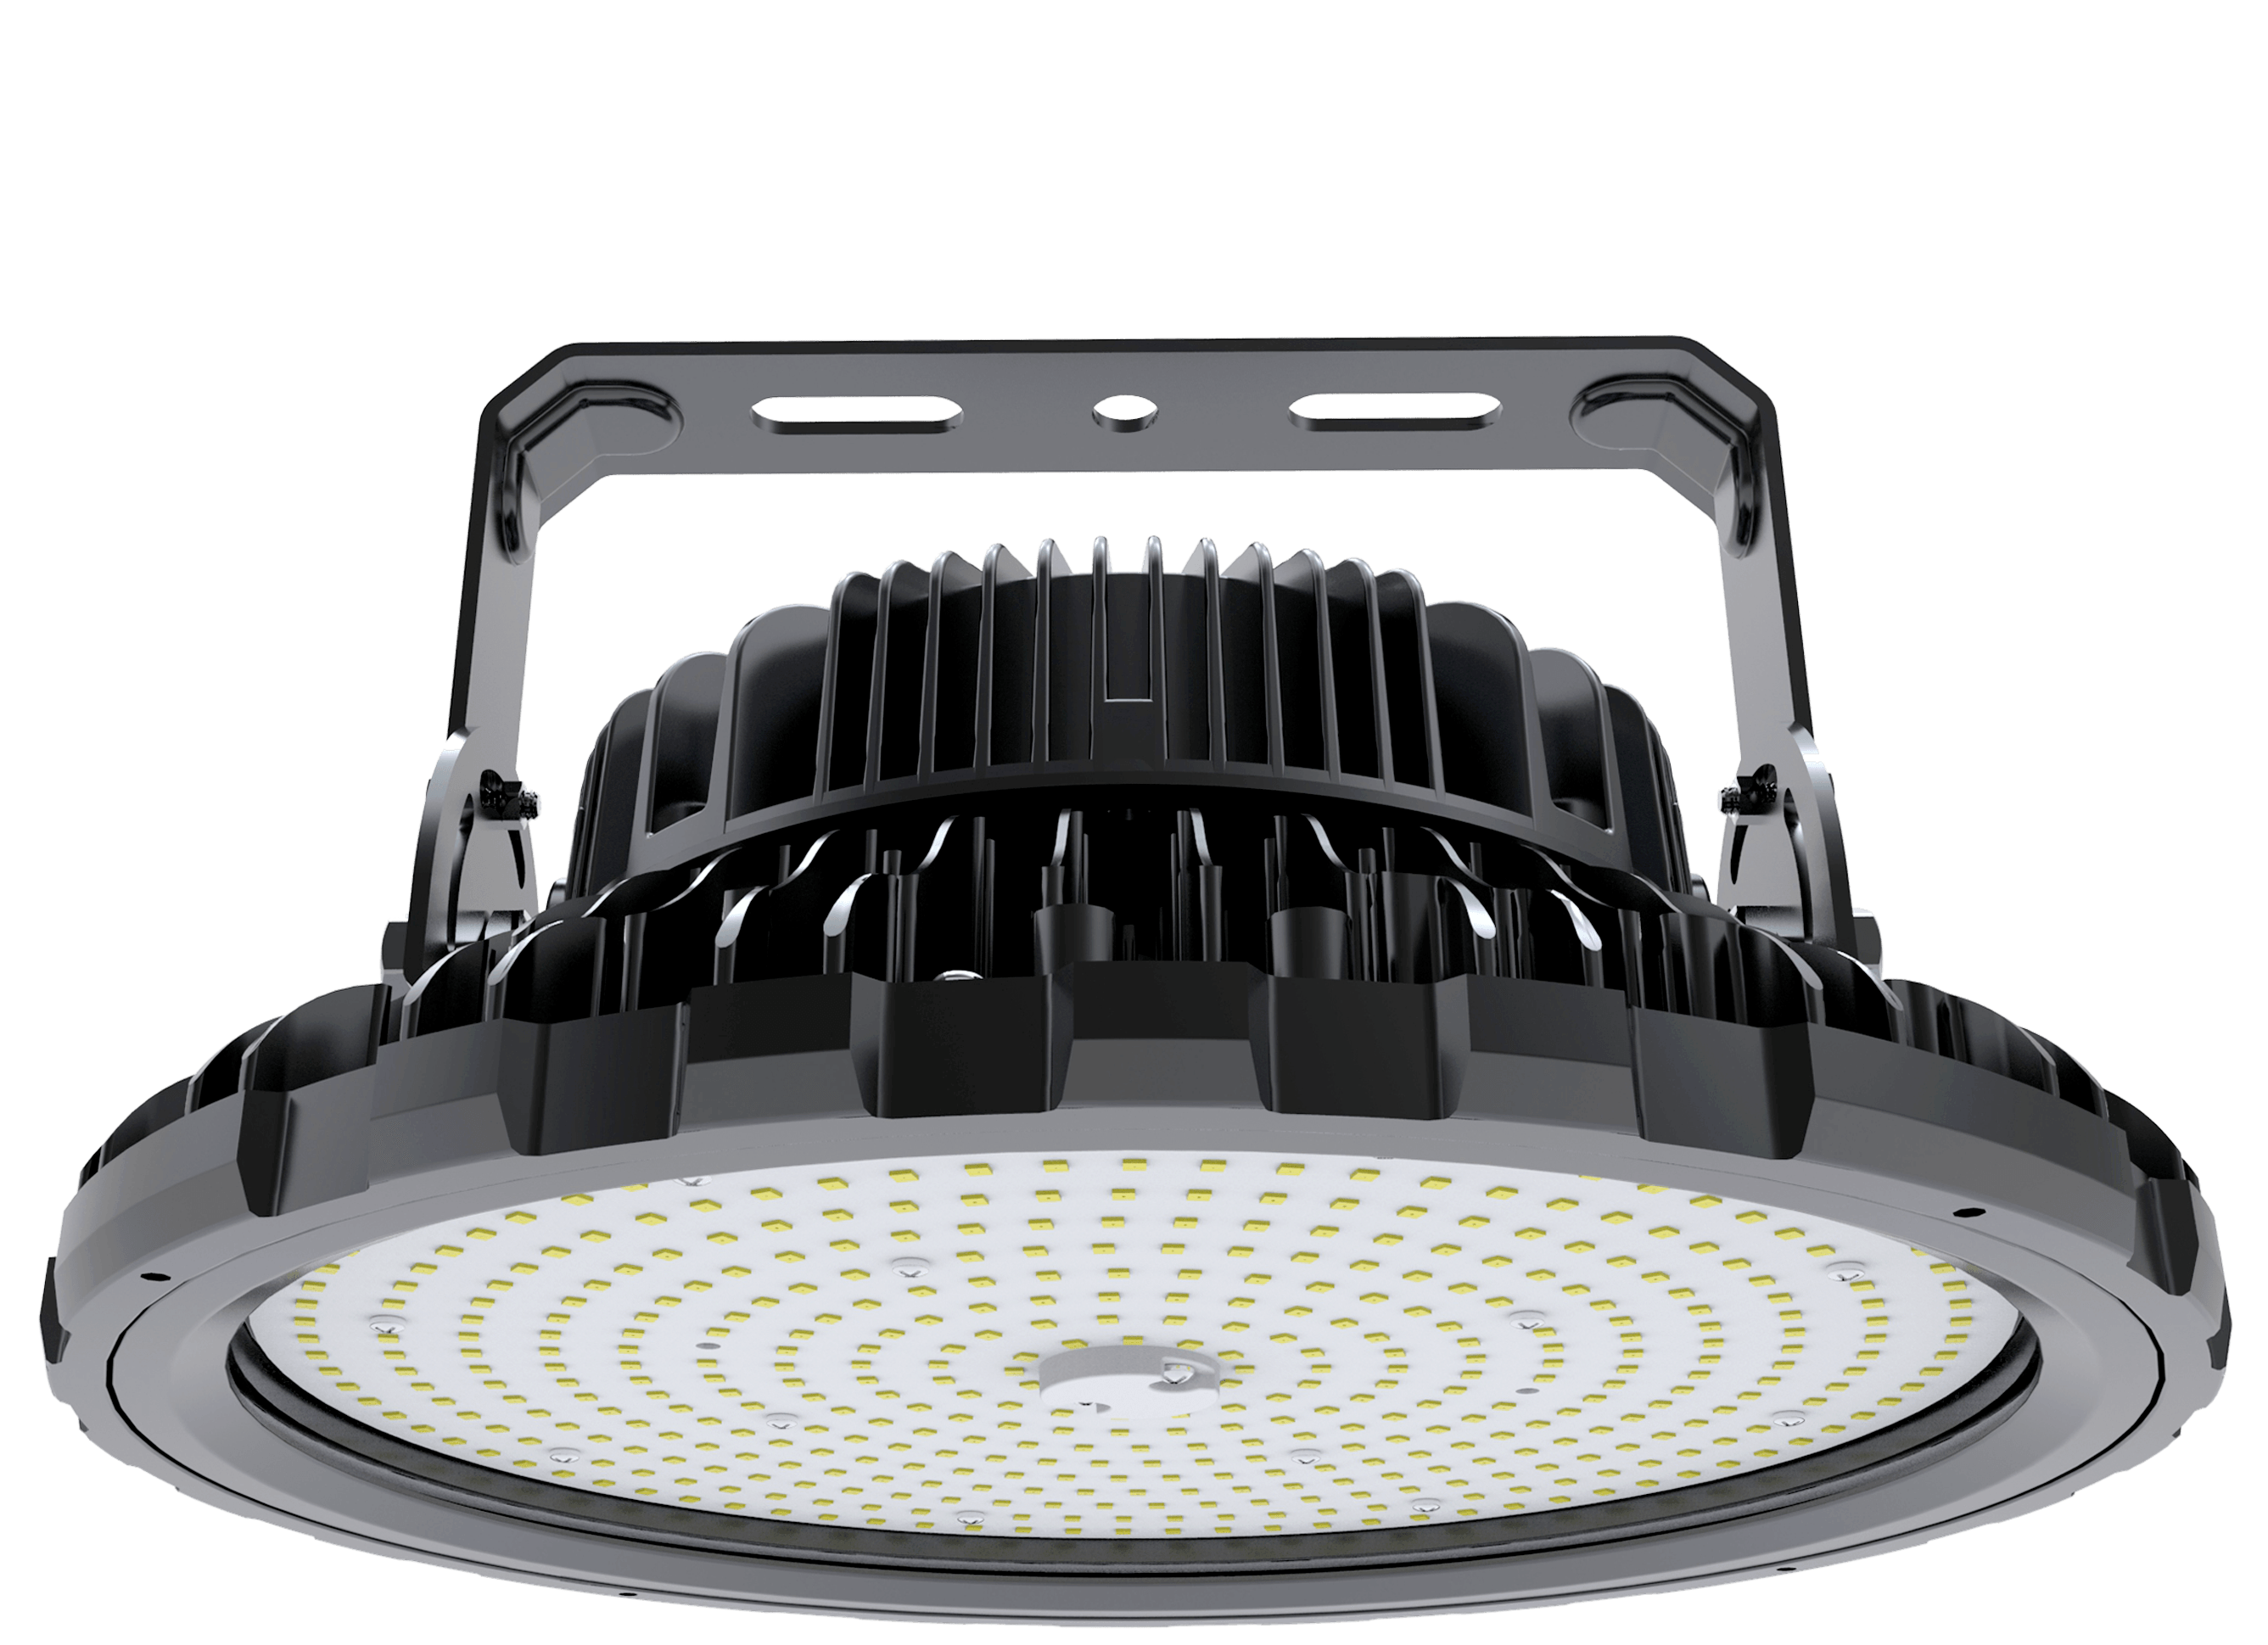 UFO LED HighBay Light 200W 135Lmw, IP65 Waterproof